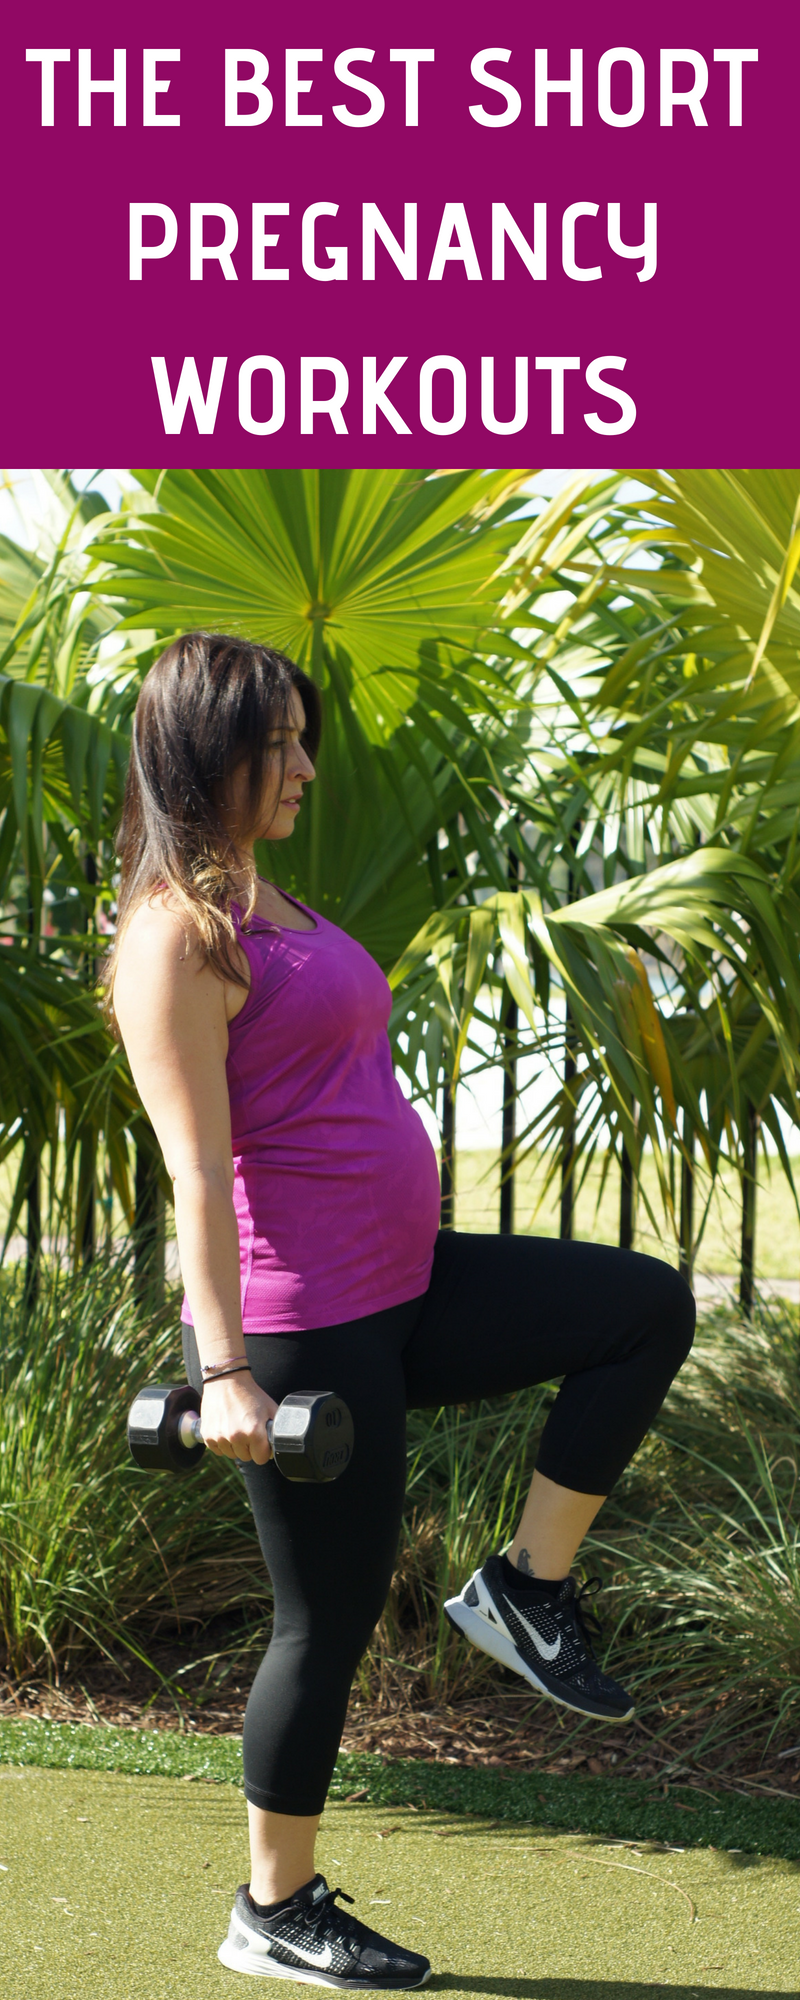 THE BEST SHORT PREGNANCY WORKOUTS